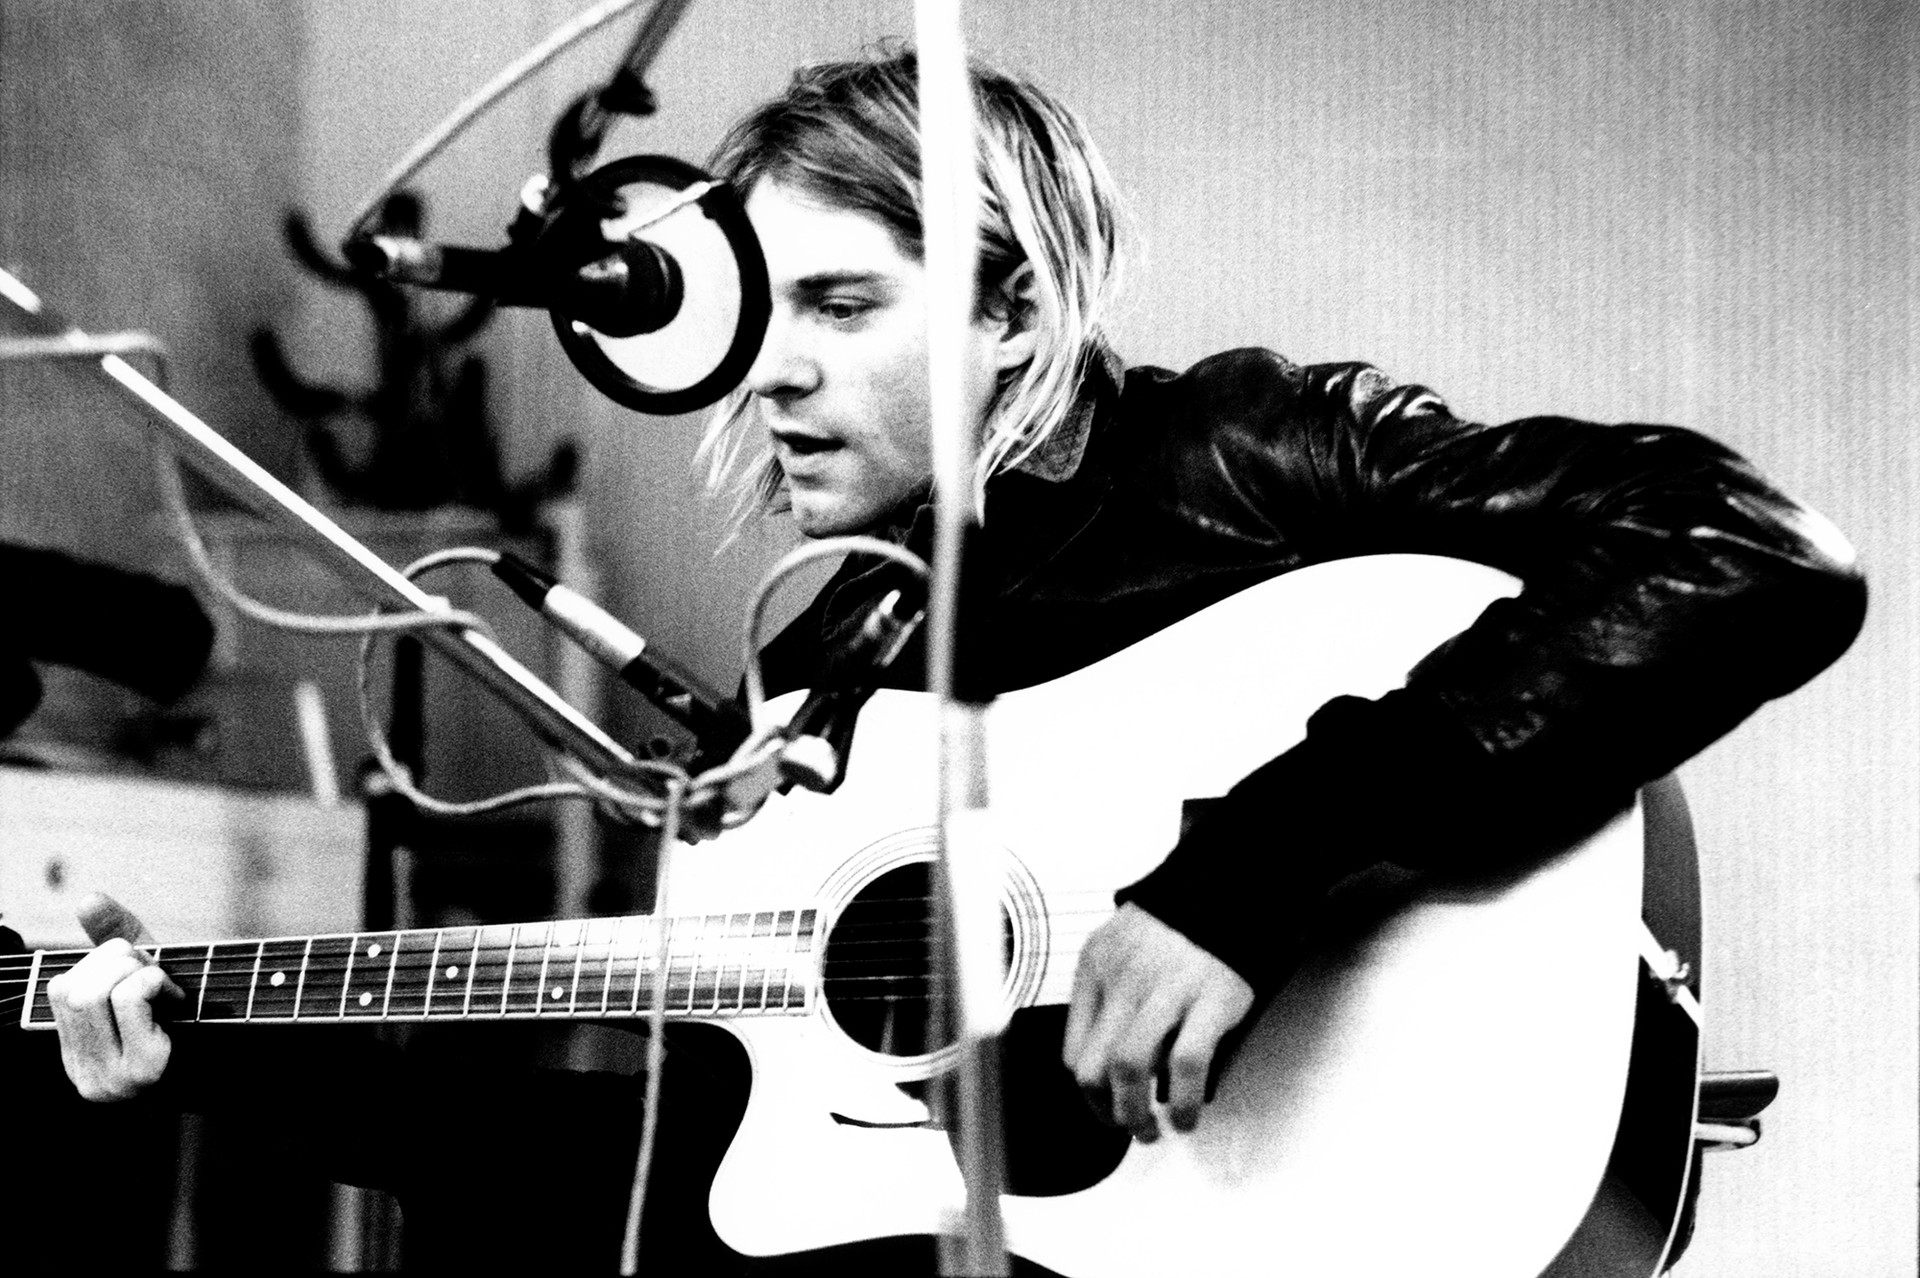 Kurt Cobain of Nirvana (the mic on the photo is not produced by the Oktava plant)